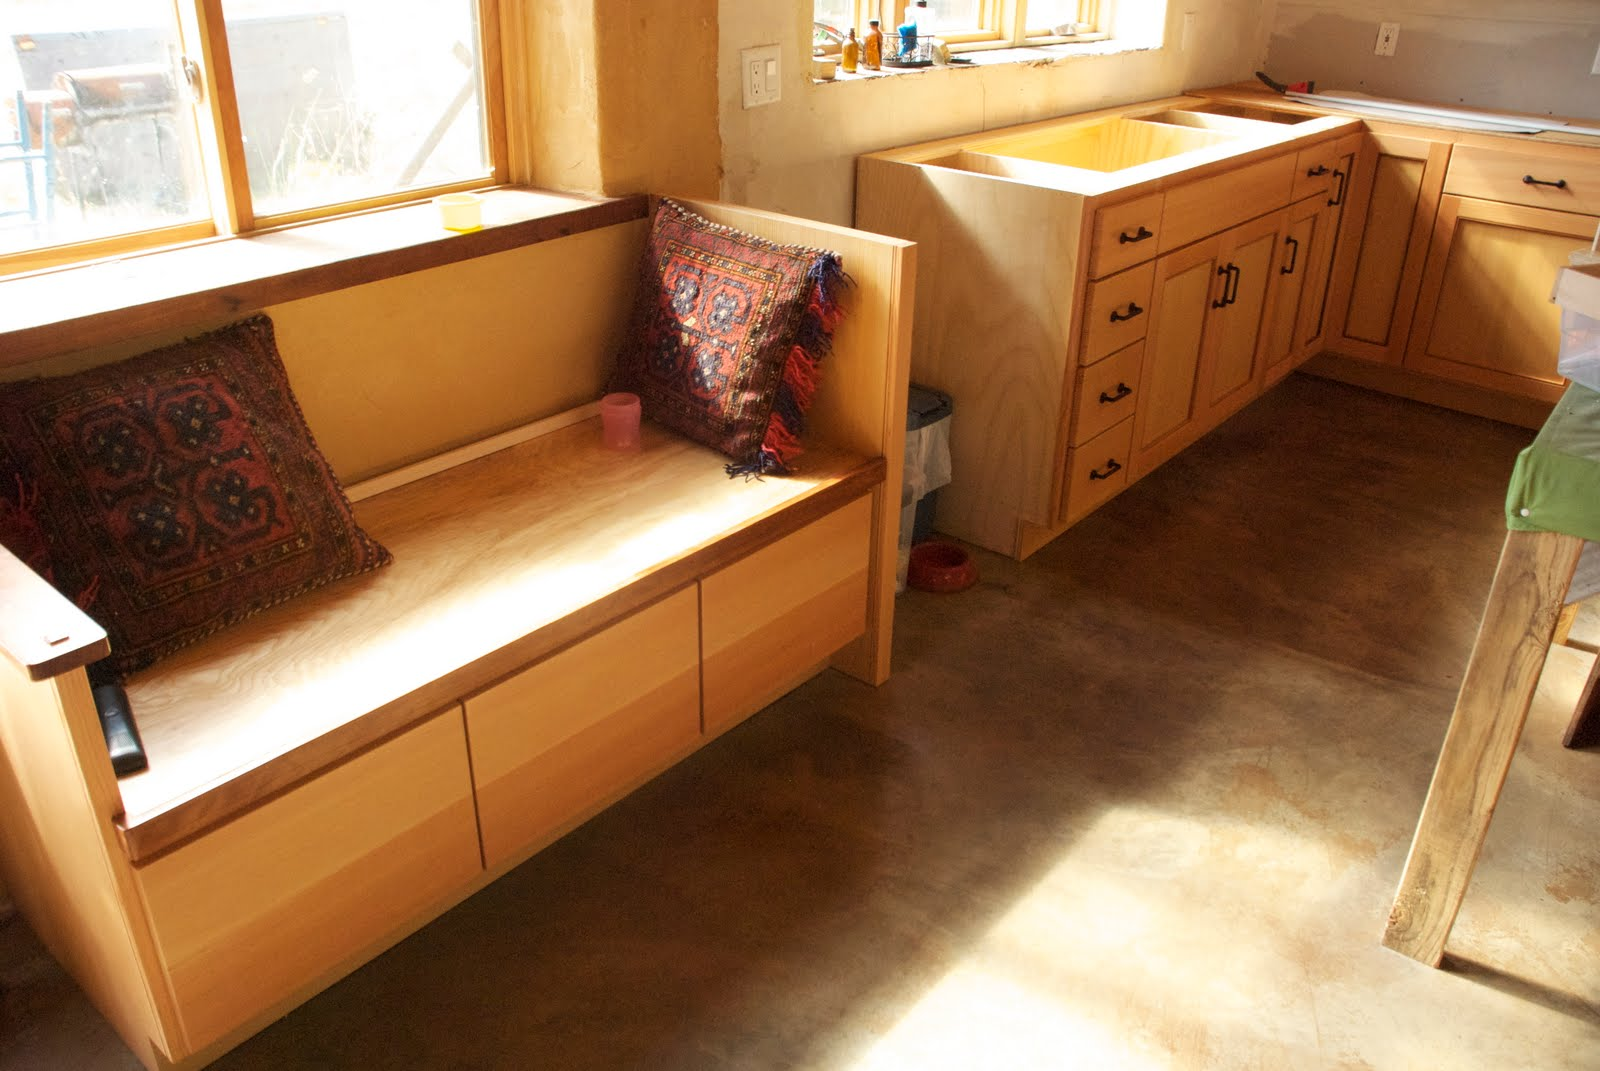 California homesteading kitchen cabinets oh my for Küchencouch